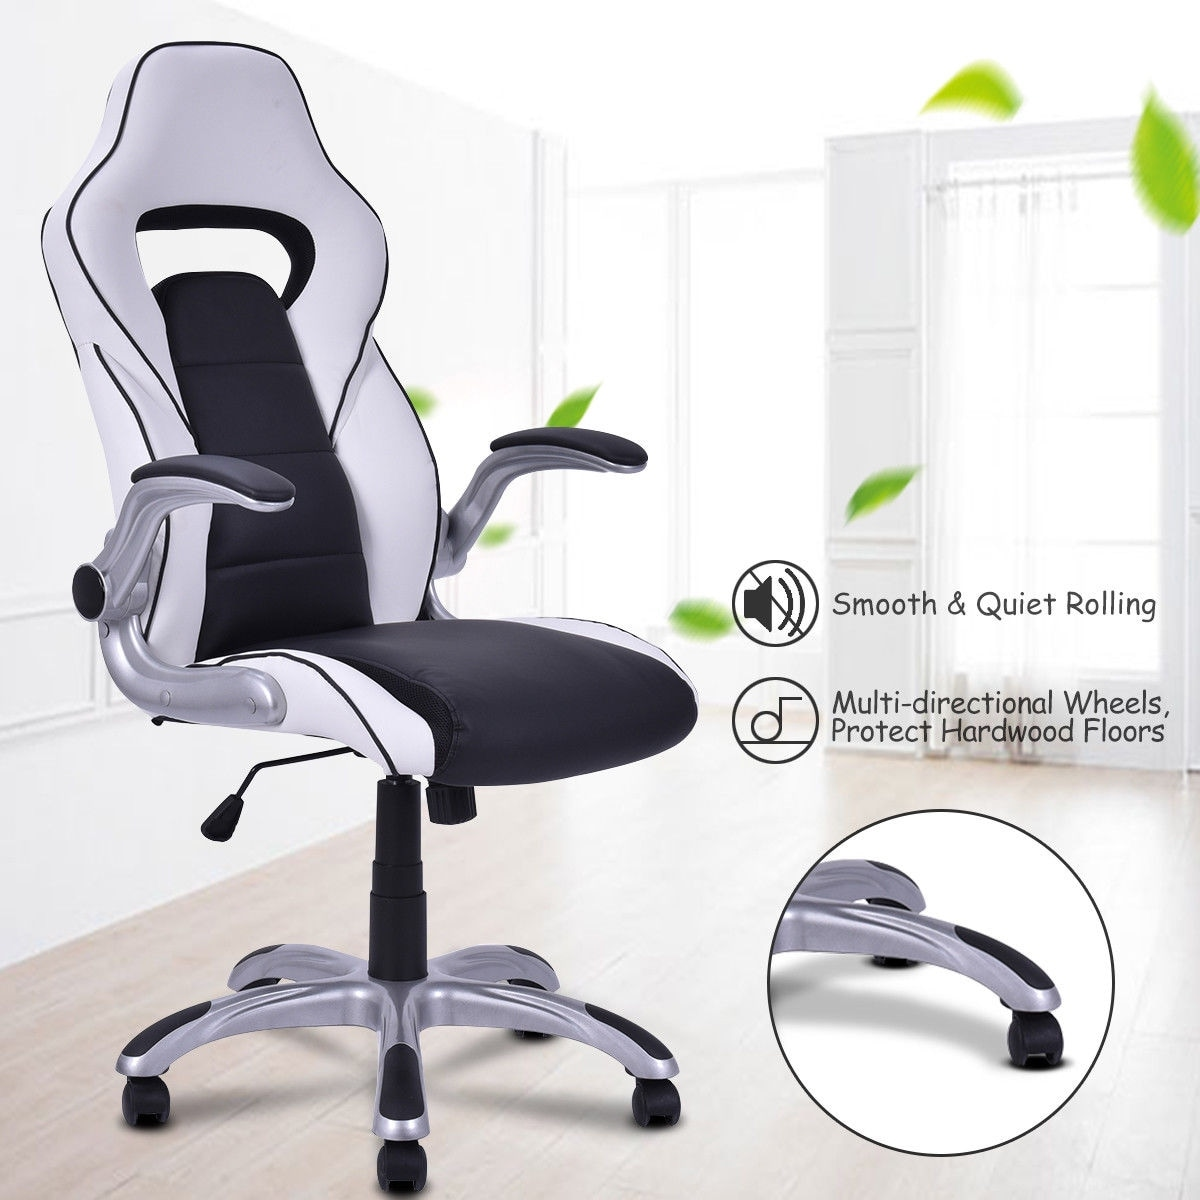 Costway High Back Executive Racing Style Office Chair Gaming